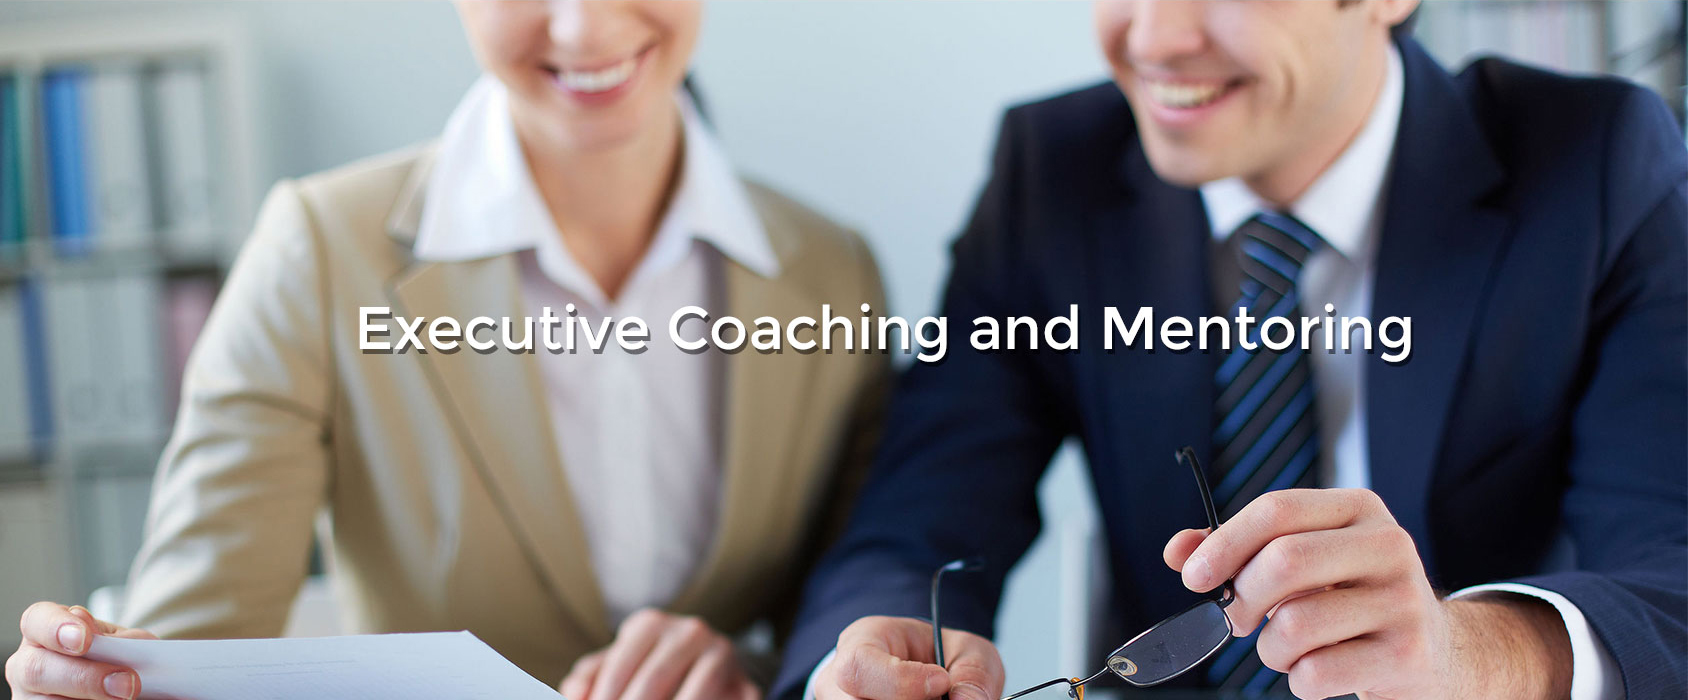 Executive Coaching and Mentoring